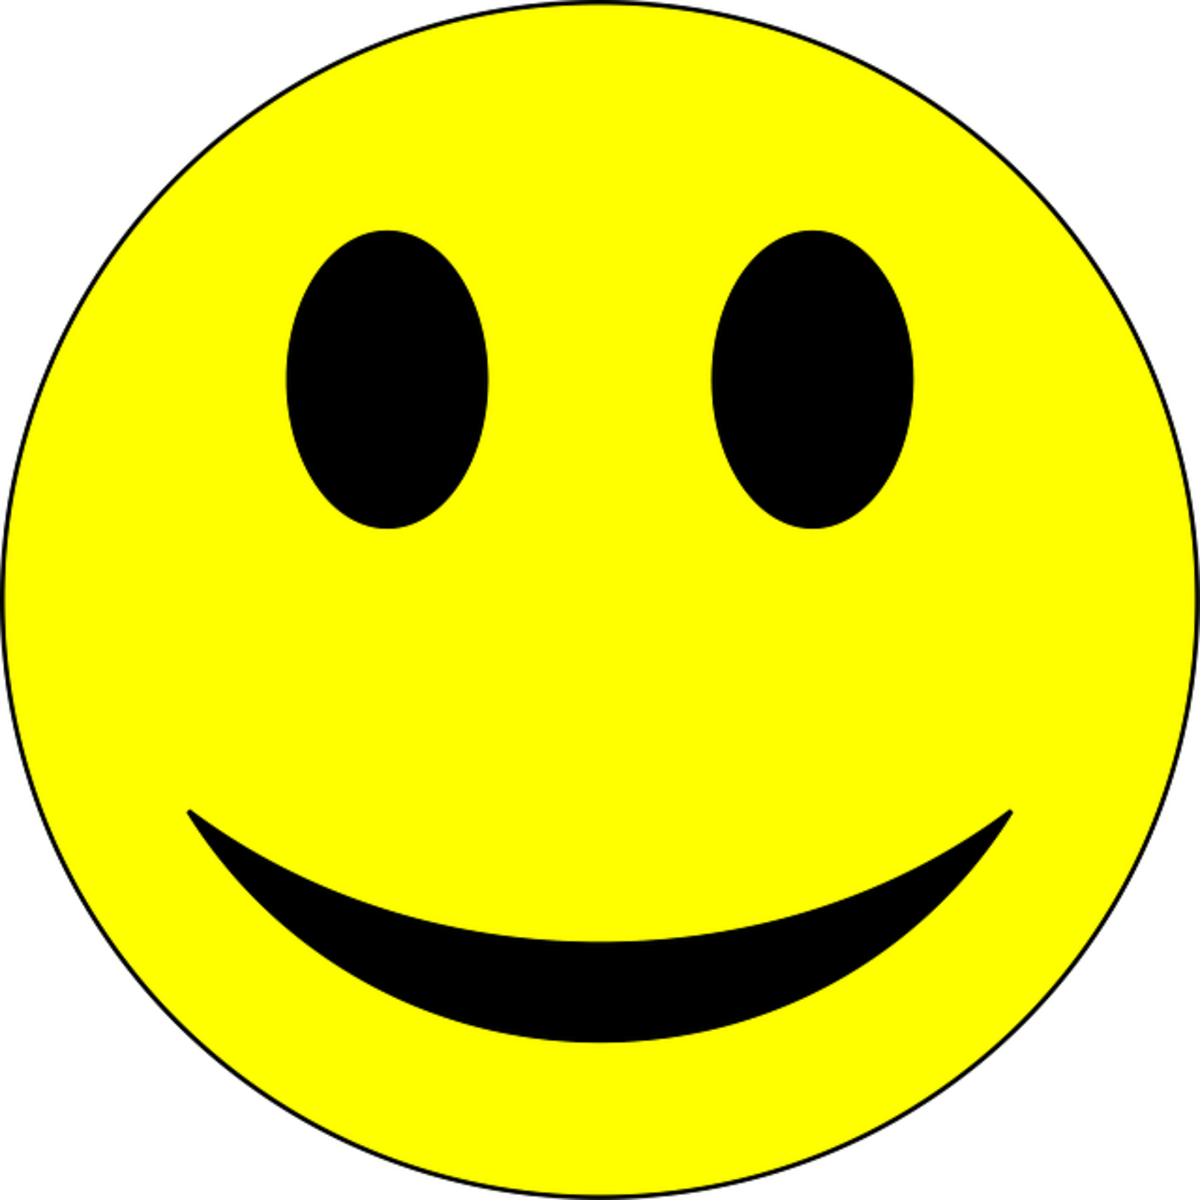 We Must Stop Smiley Face Emoticon Abuse! | HubPages